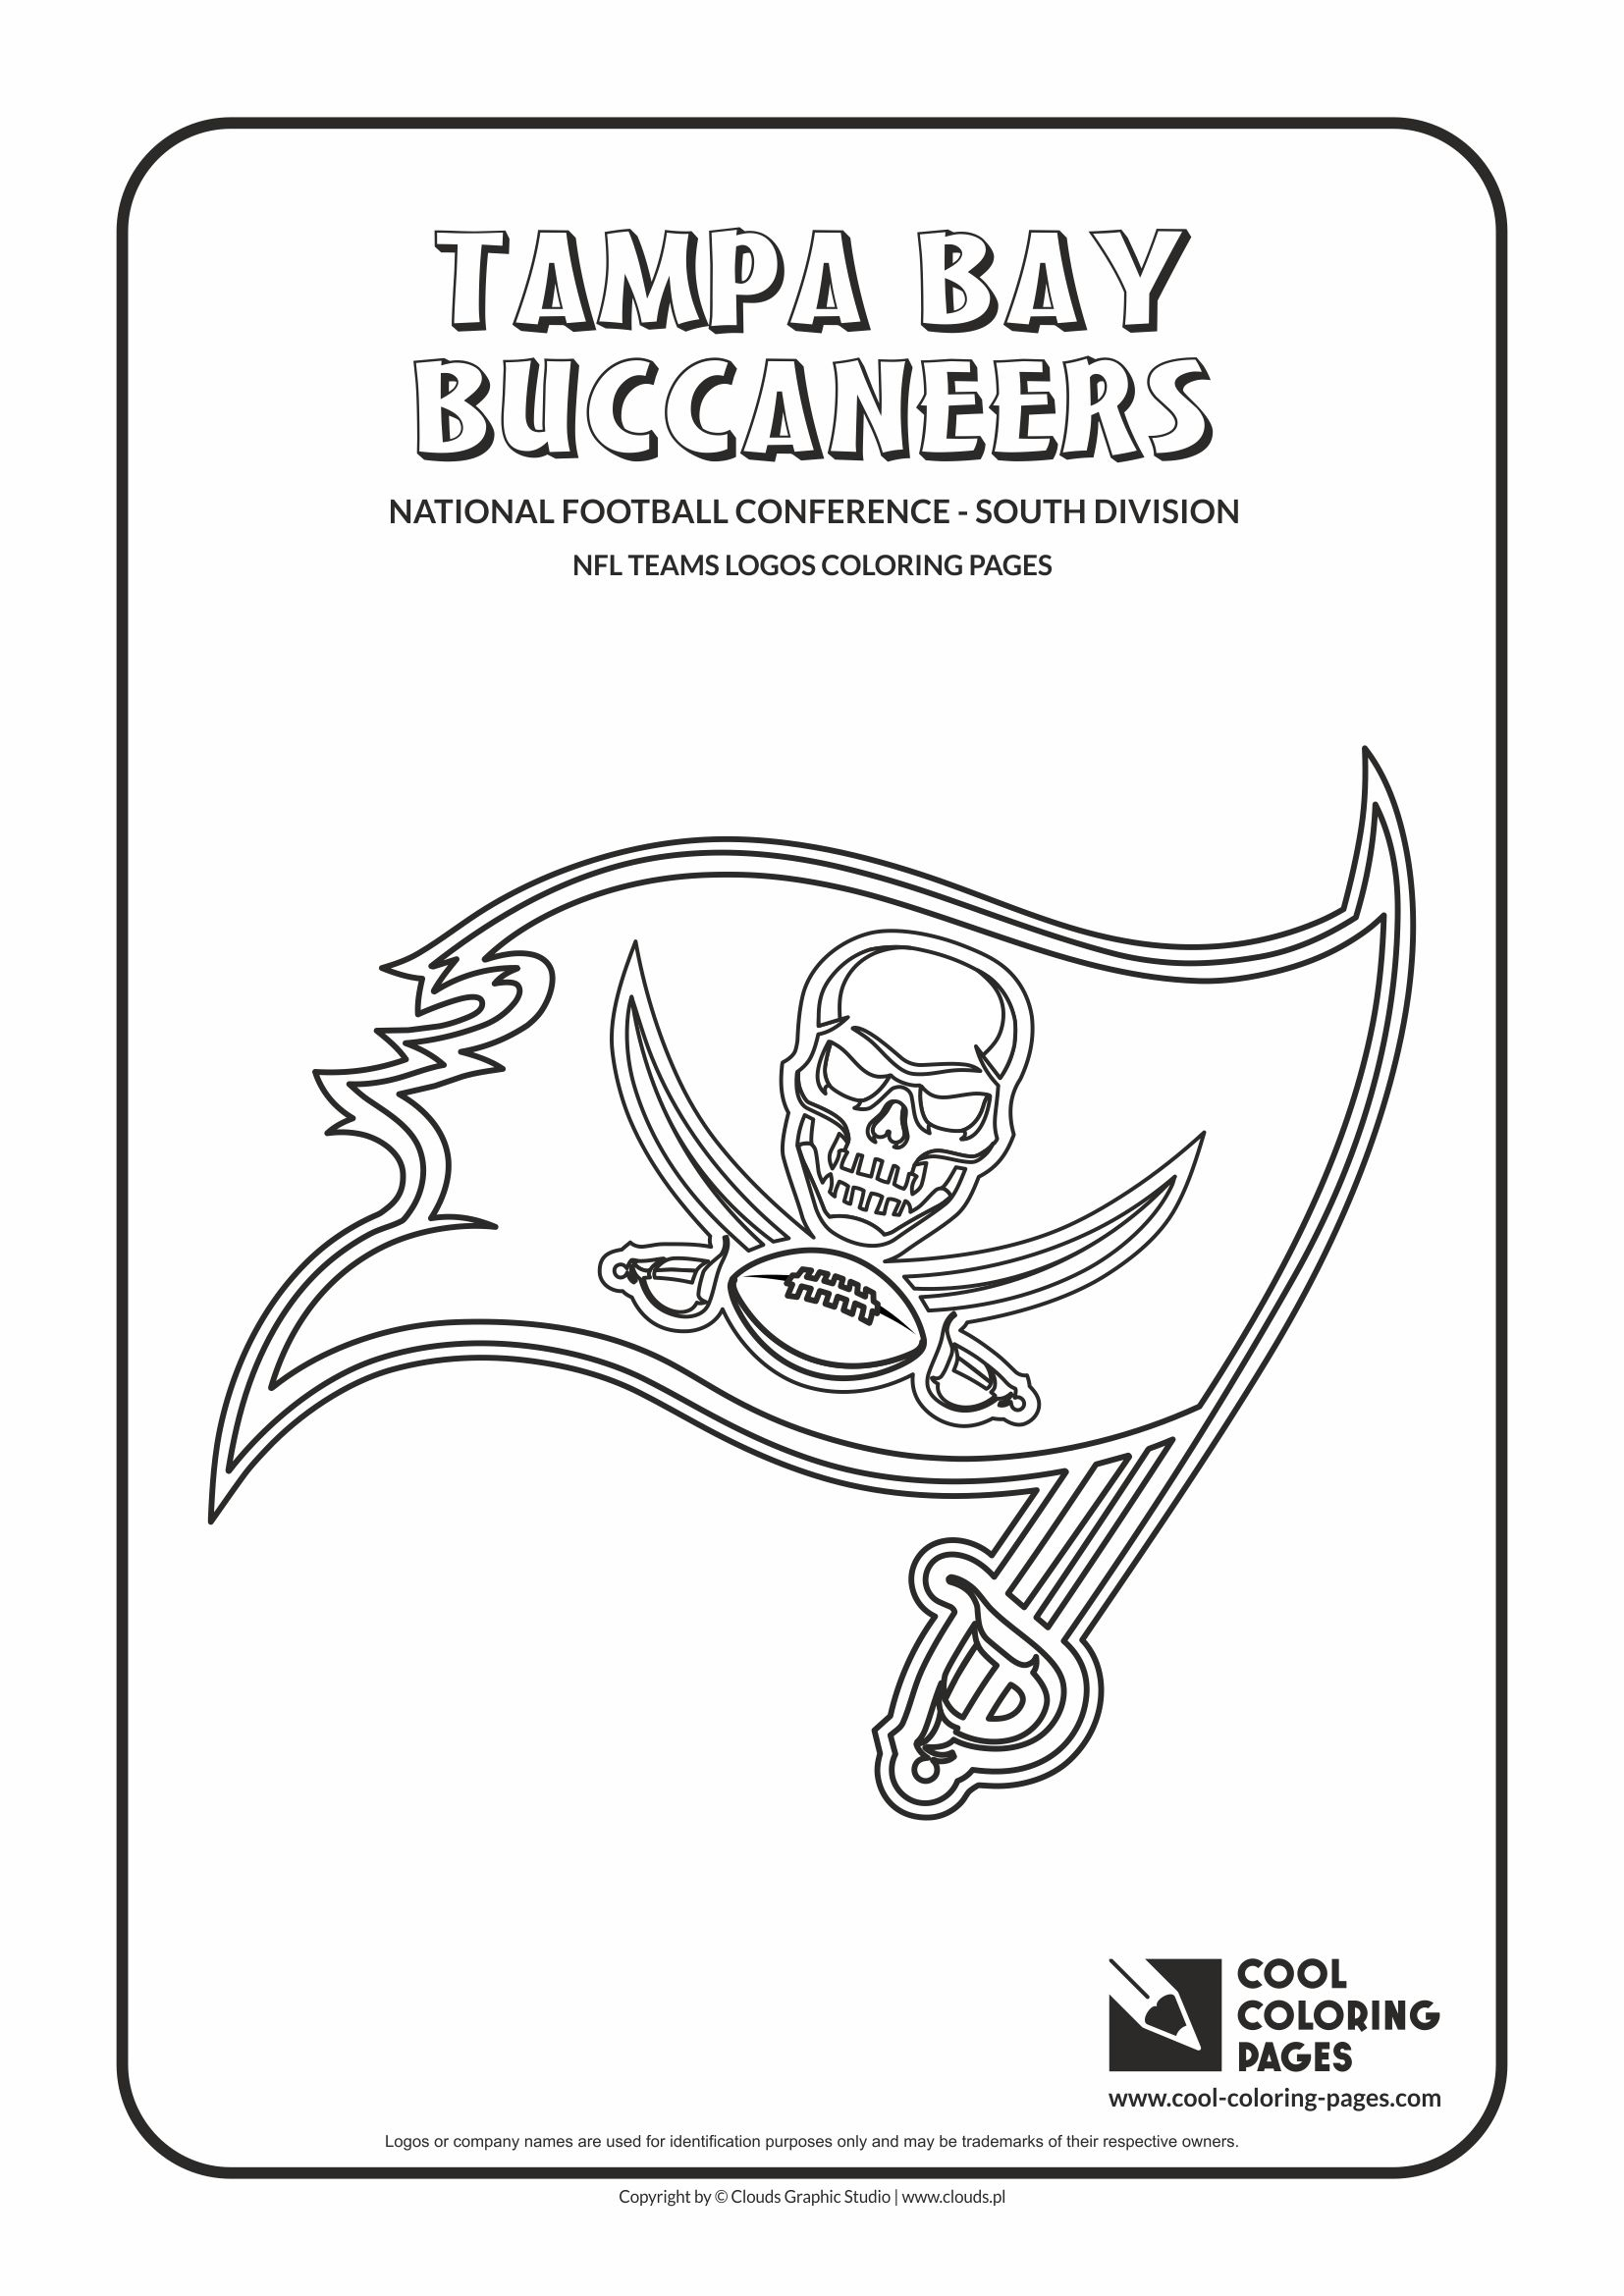 20 Nfl Logo Coloring Pages Selection FREE COLORING PAGES Part 3